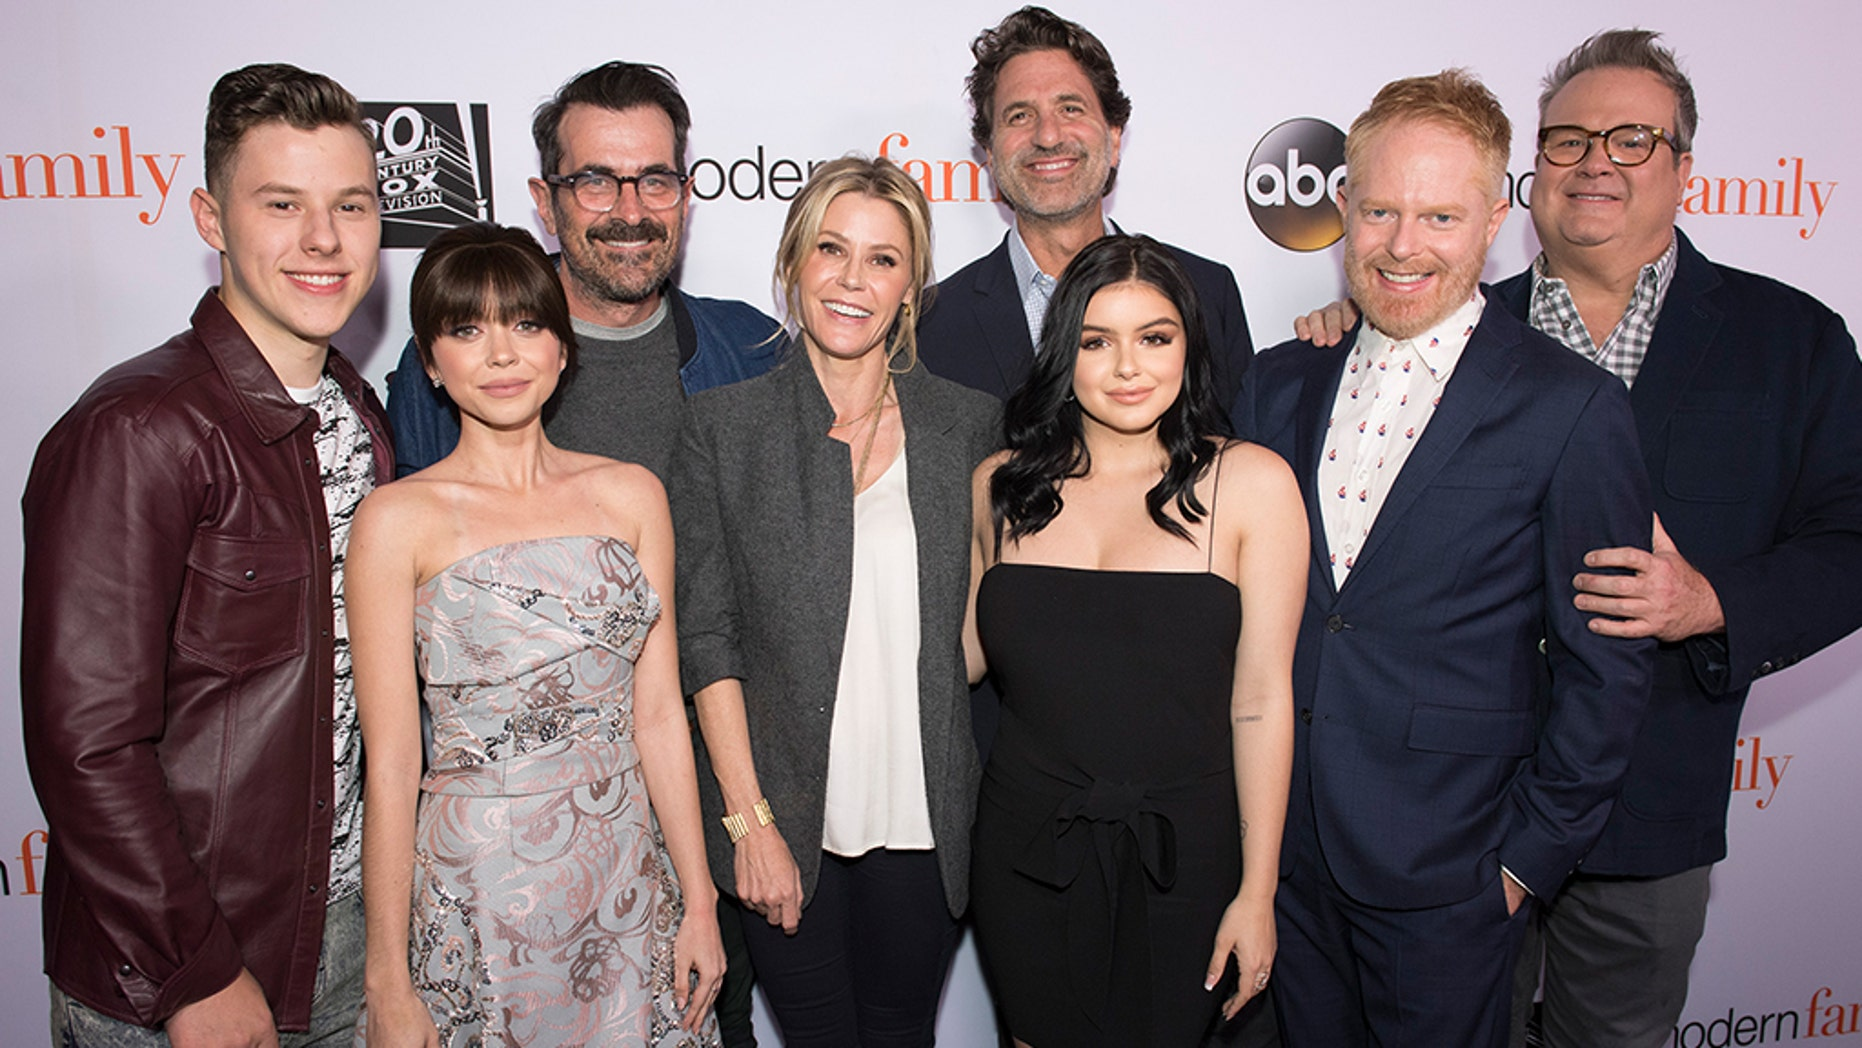 'Modern Family' Finally Reveals Death Of Major Character